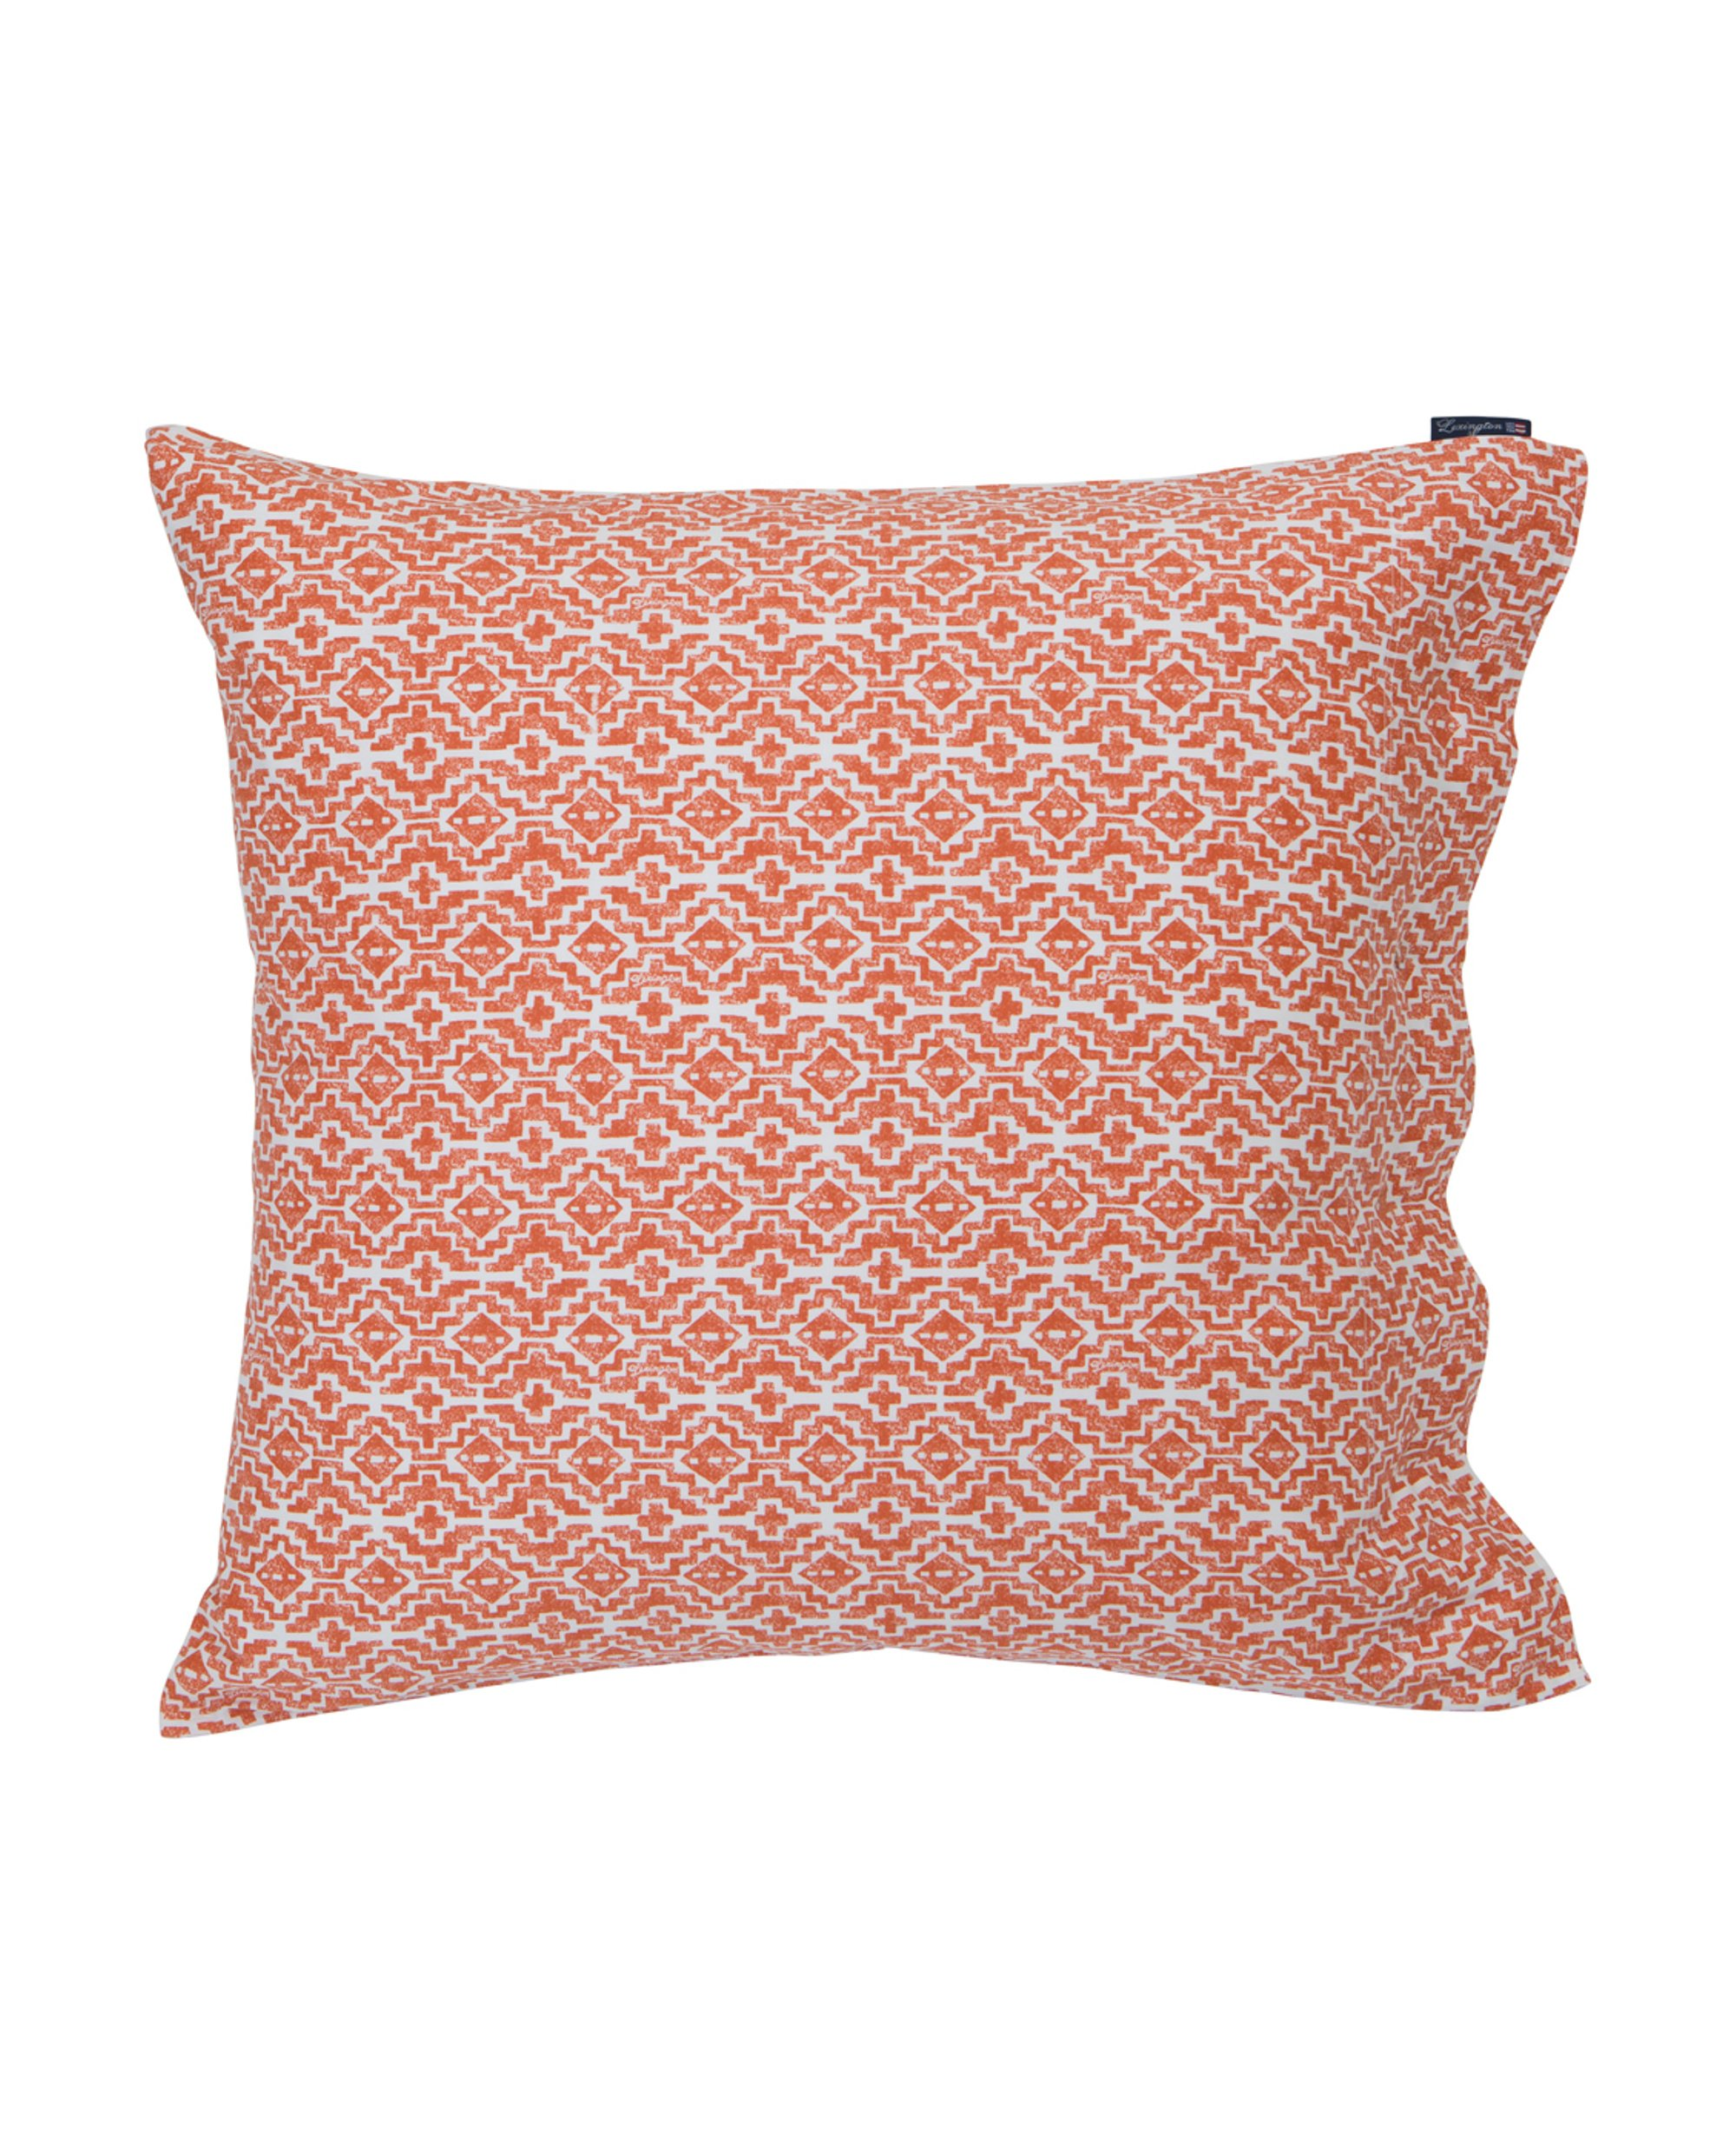 Apricot Printed Sateen Pillowcase